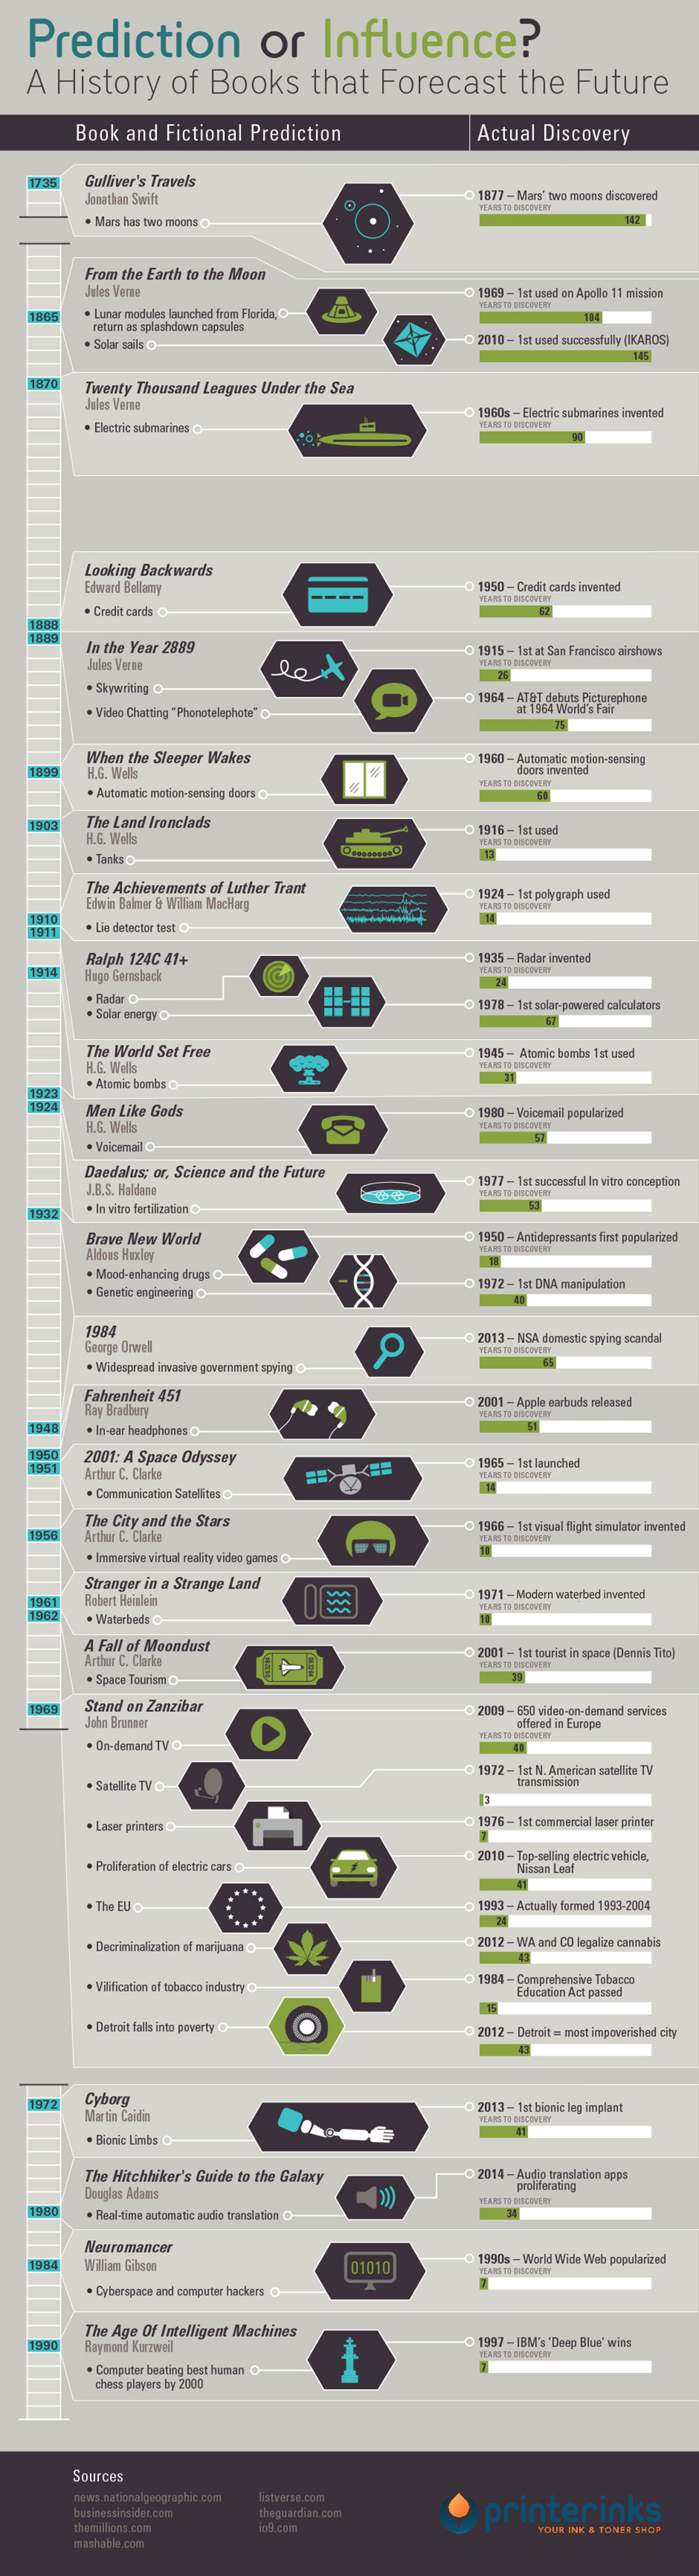 24 books that predicted the future - infographic